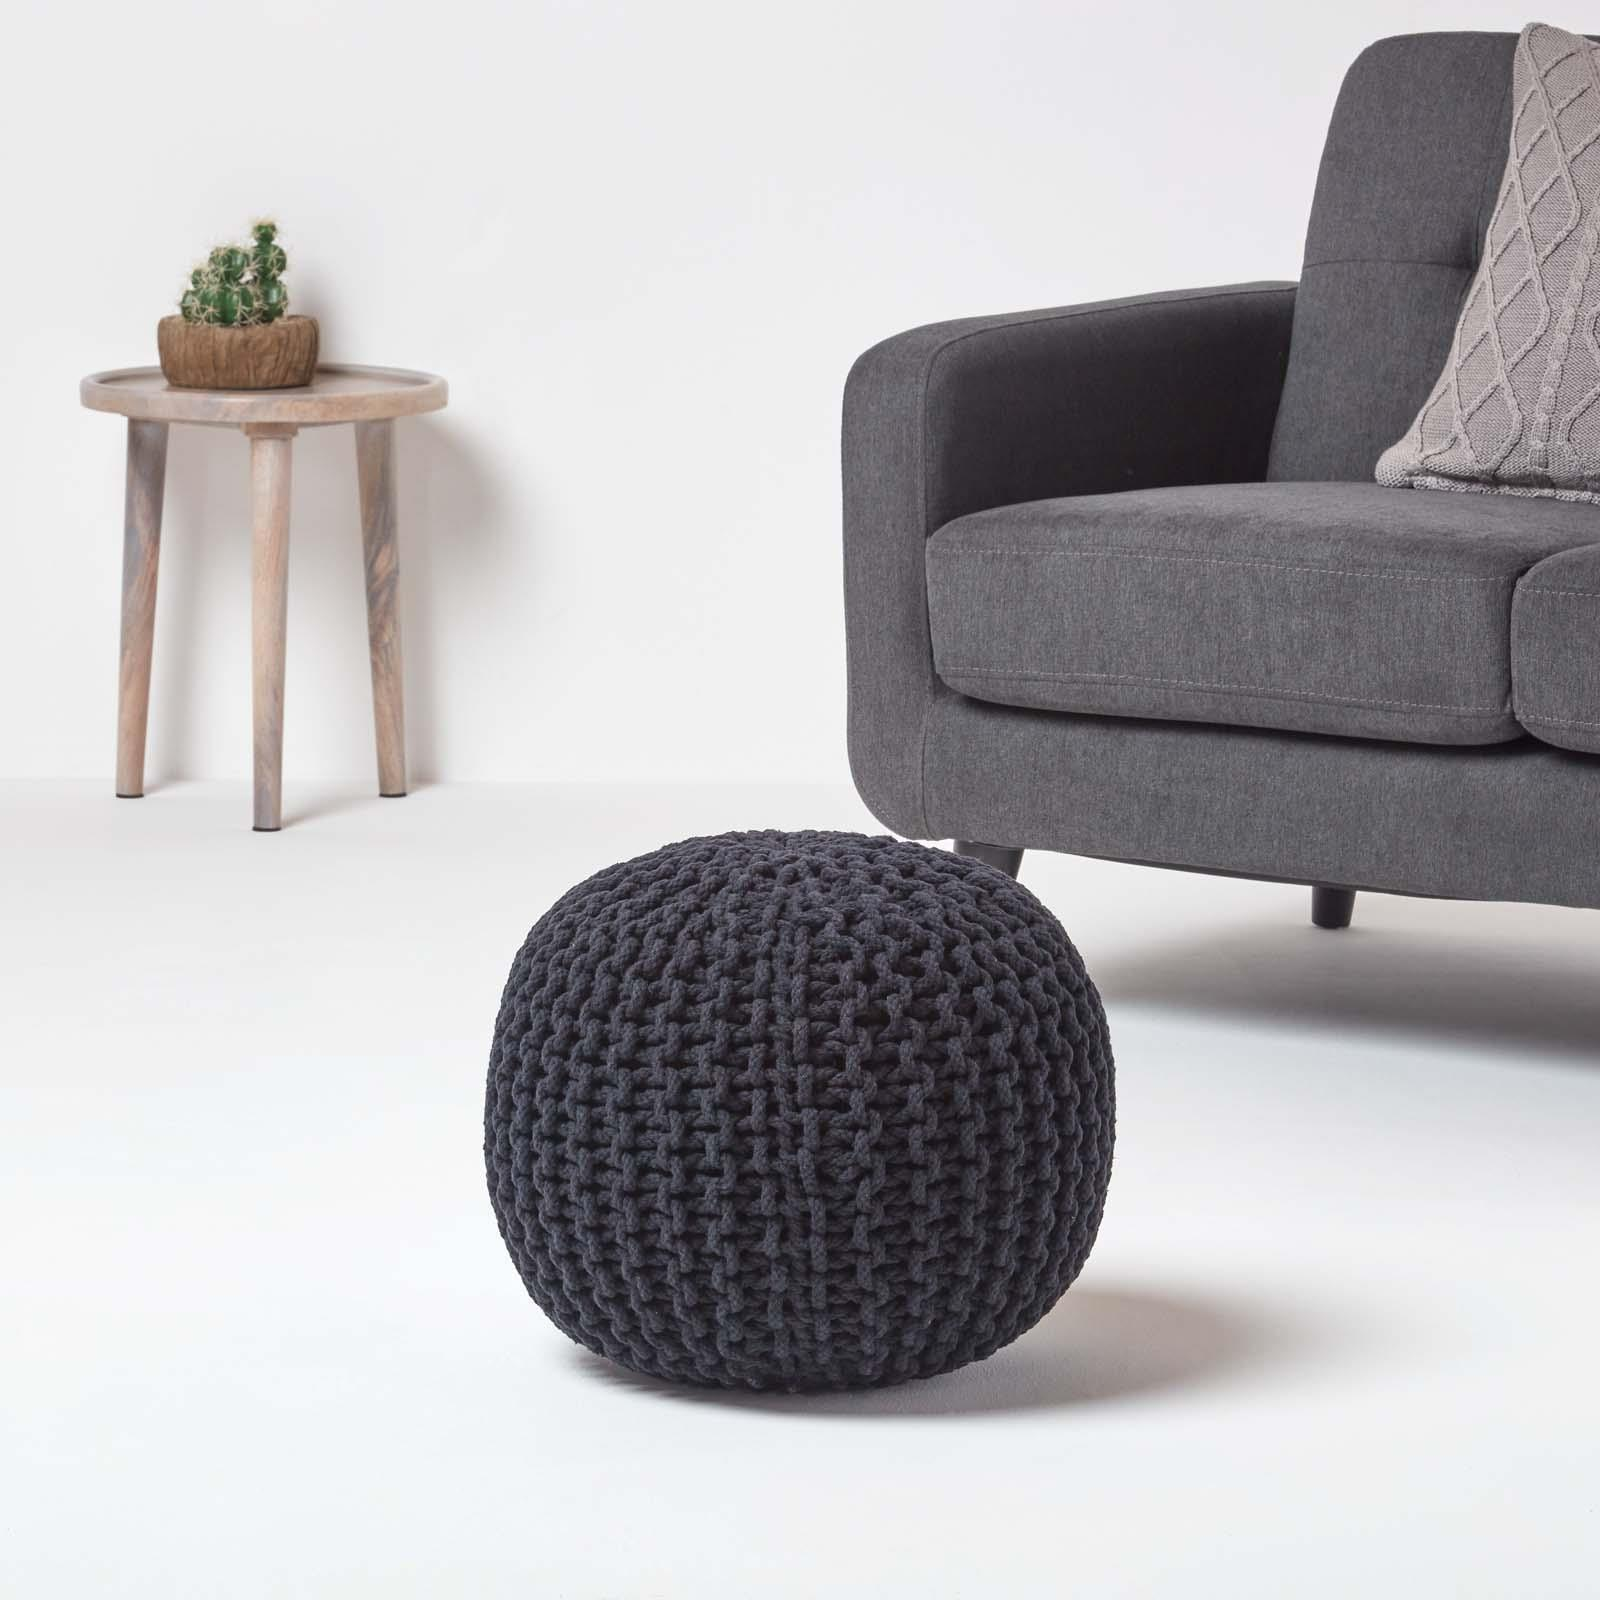 Hand-Knitted-100-Cotton-Pouffes-Round-Sphere-Or-Cube-Square-Chunky-Footstools thumbnail 5